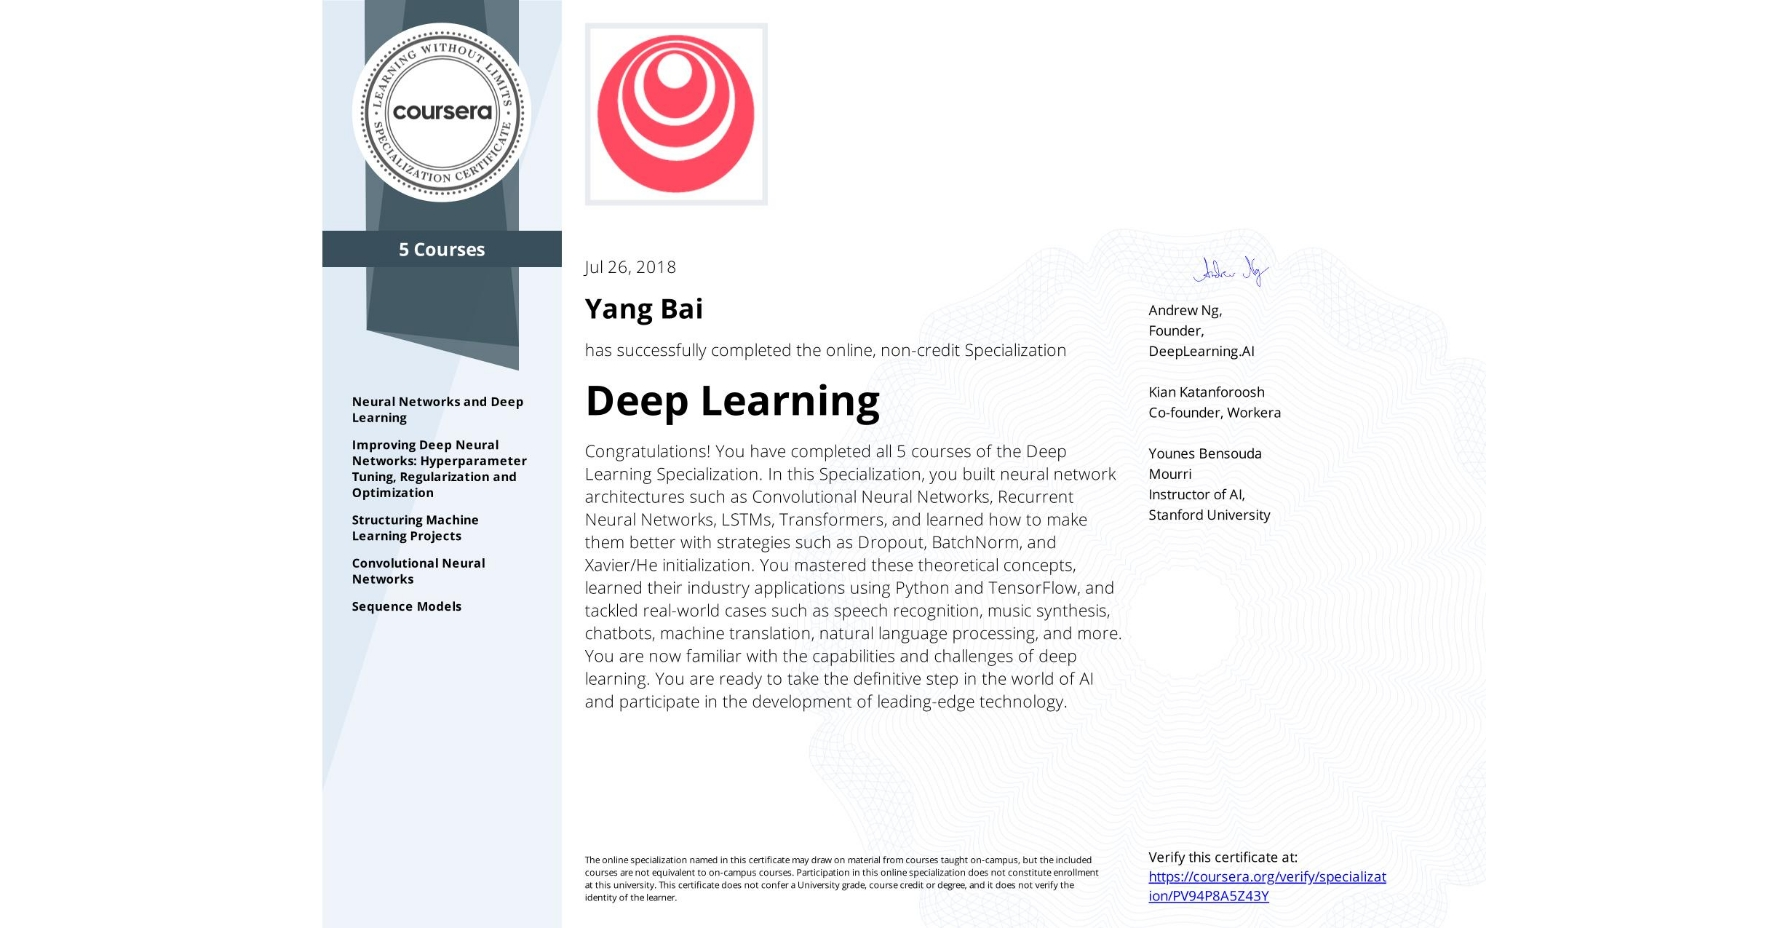 View certificate for Yang Bai, Deep Learning, offered through Coursera. Congratulations! You have completed all 5 courses of the Deep Learning Specialization.  In this Specialization, you built neural network architectures such as Convolutional Neural Networks, Recurrent Neural Networks, LSTMs, Transformers, and learned how to make them better with strategies such as Dropout, BatchNorm, and Xavier/He initialization. You mastered these theoretical concepts, learned their industry applications using Python and TensorFlow, and tackled real-world cases such as speech recognition, music synthesis, chatbots, machine translation, natural language processing, and more.  You are now familiar with the capabilities and challenges of deep learning. You are ready to take the definitive step in the world of AI and participate in the development of leading-edge technology.